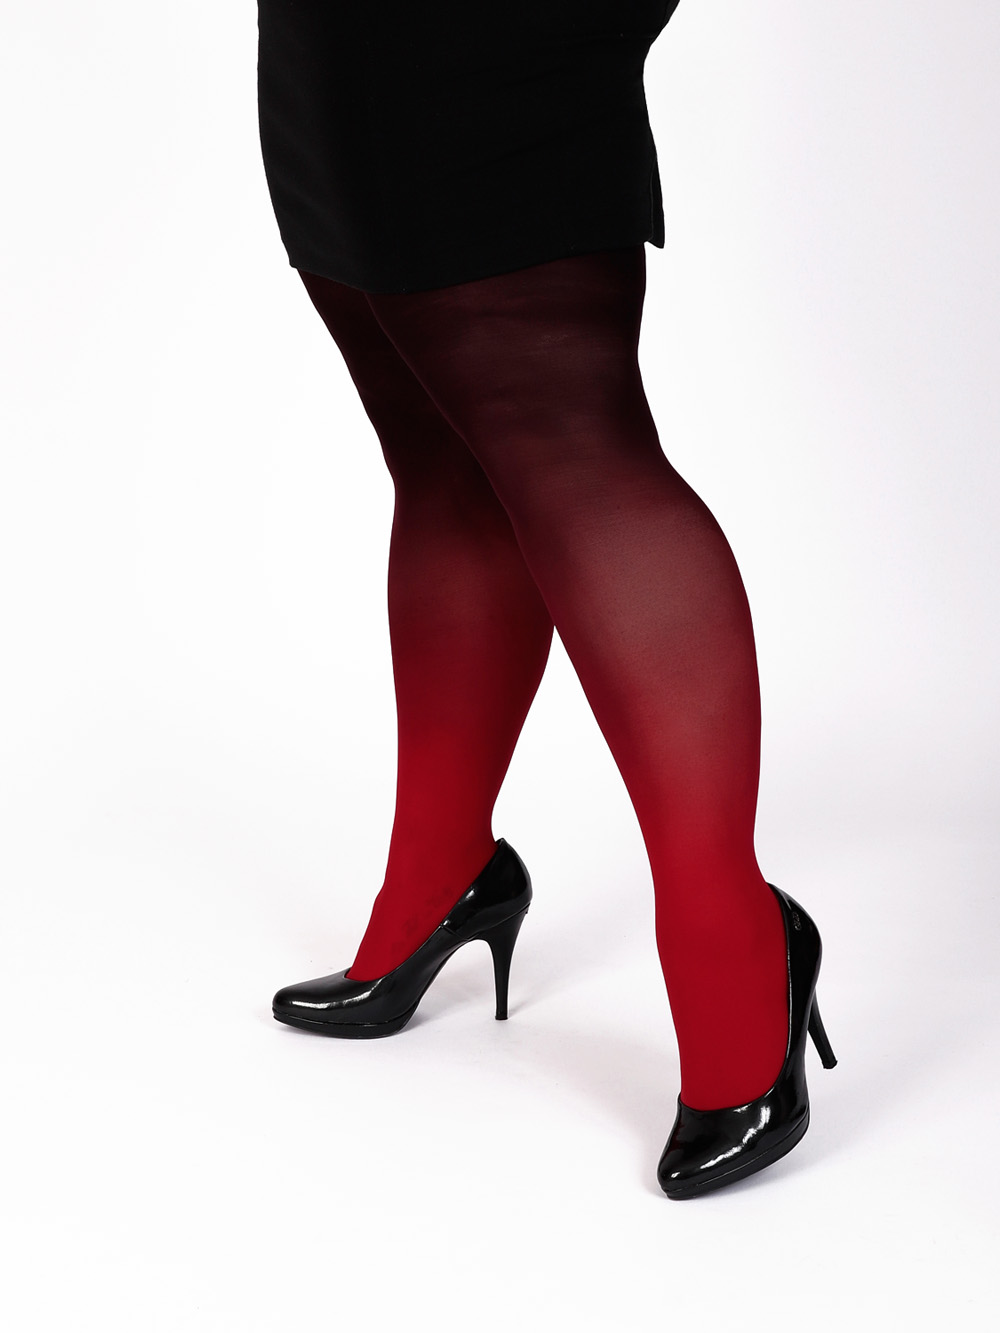 9798d90f158 Plus size red-black tights